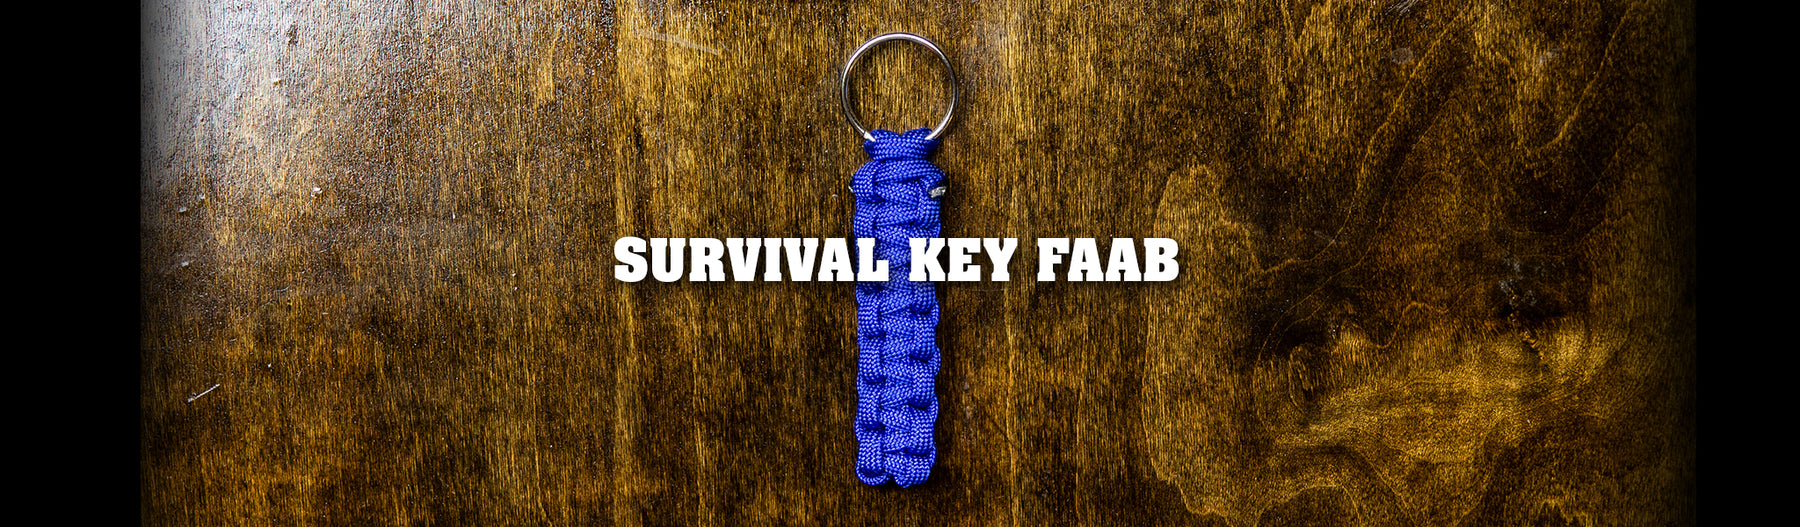 Easy Paracord Survival Key Faab